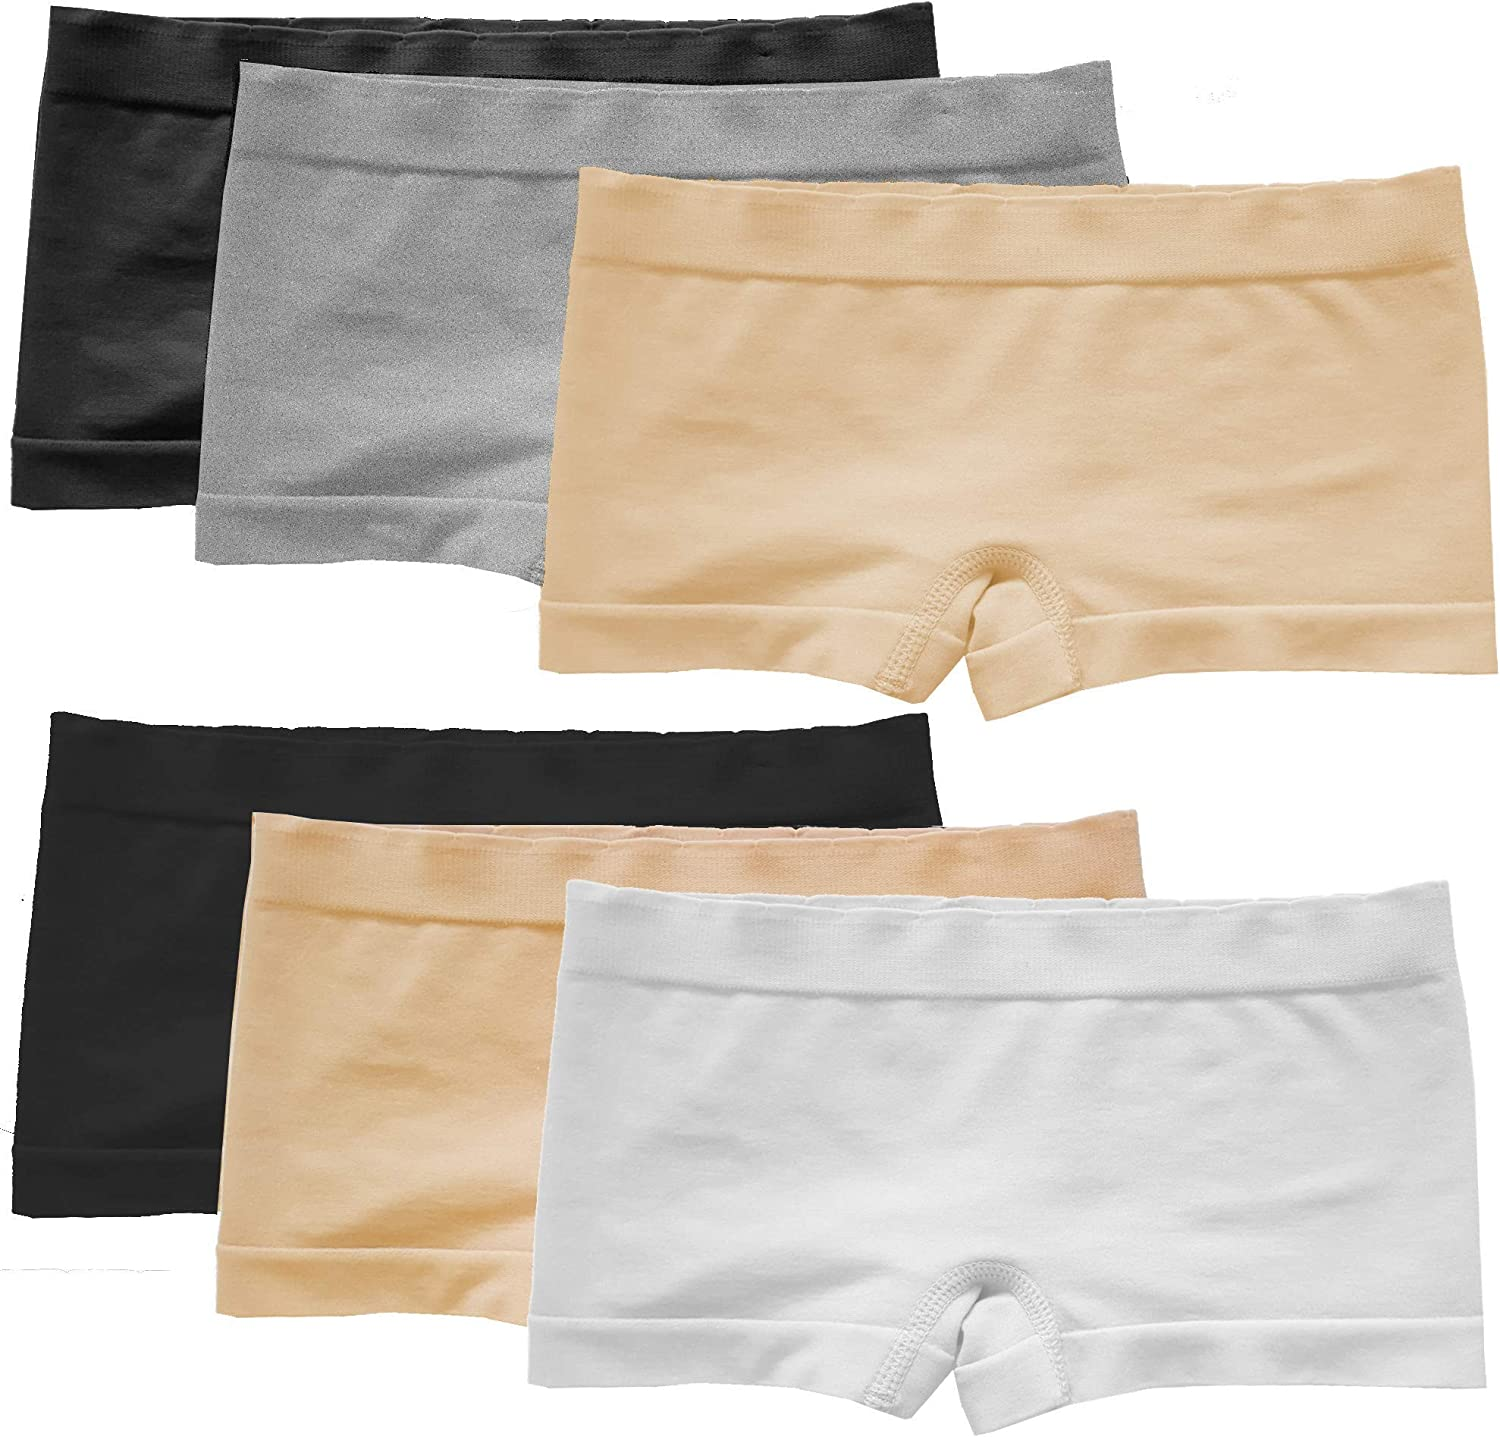 Weekly free shipping update Popular Girls' Seamless No Show Solid Boyshorts Pack - 6